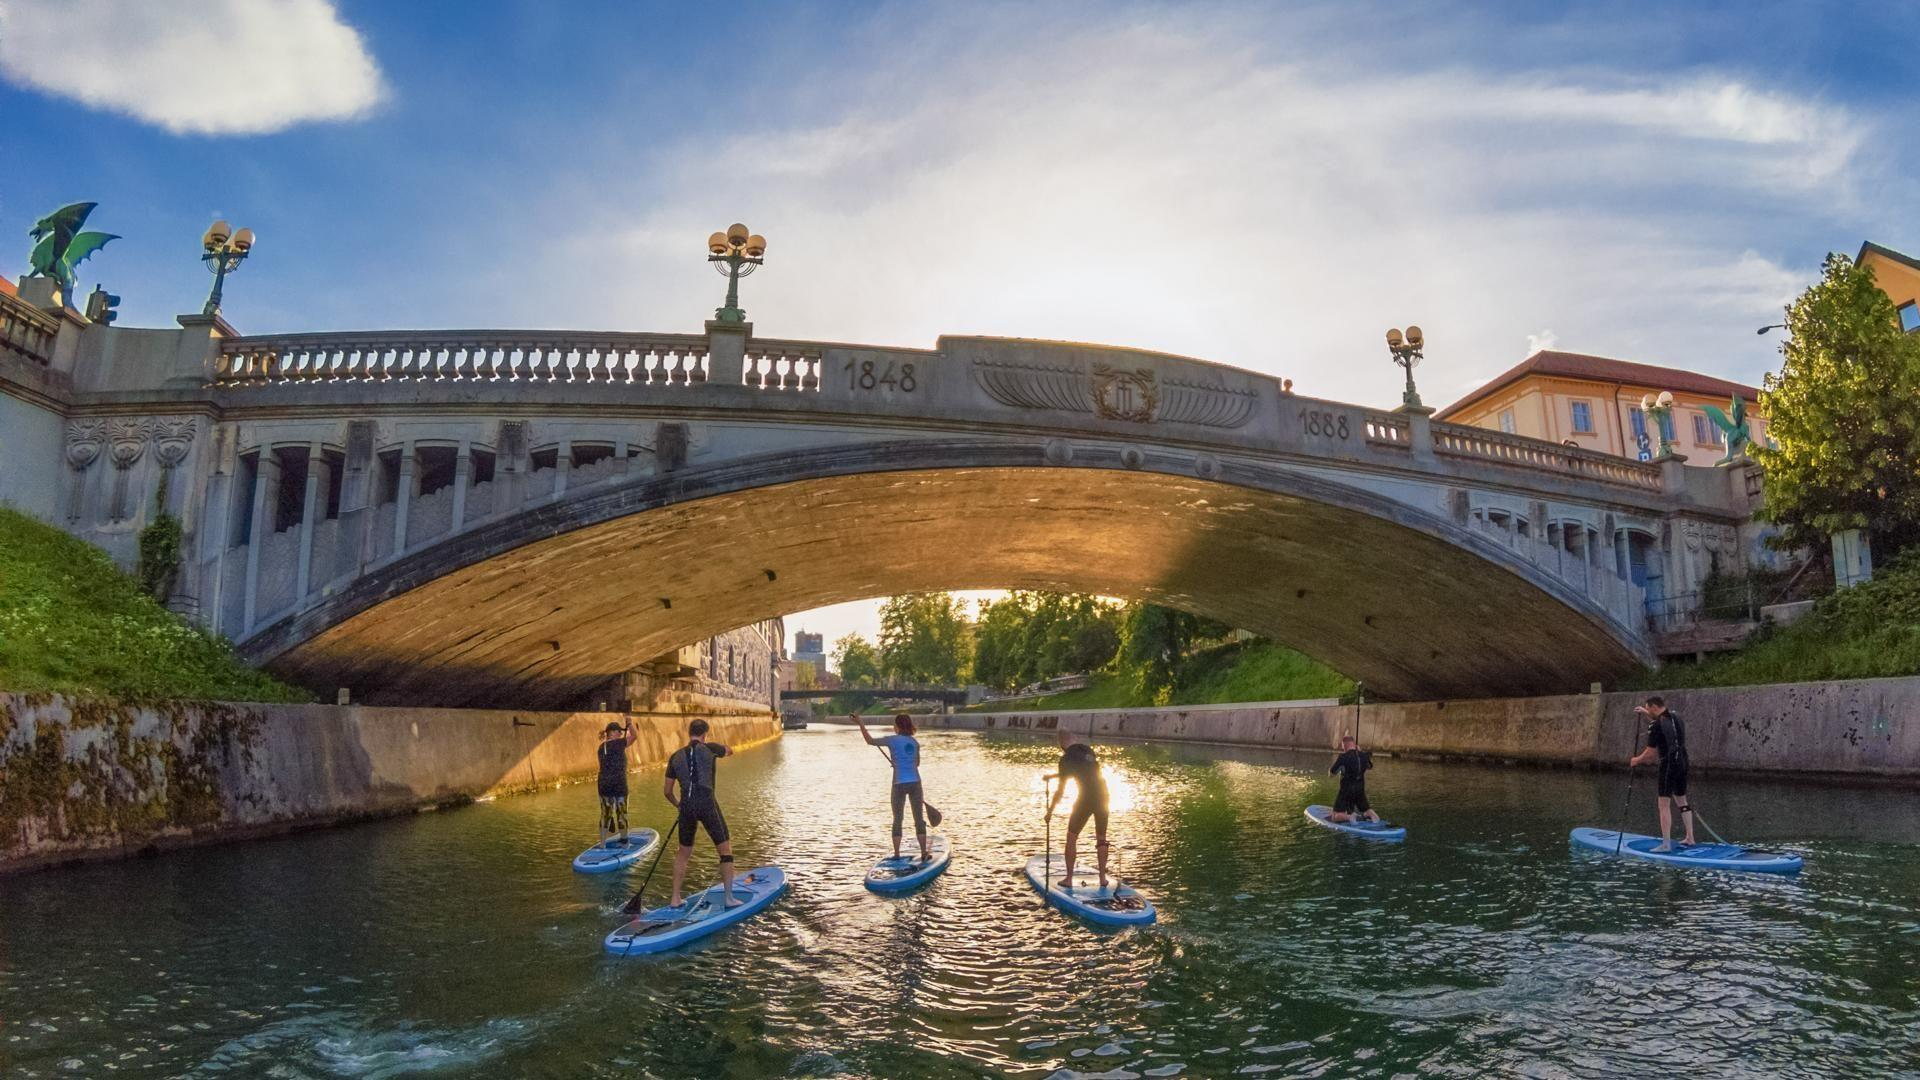 Urban paddle boarding in Slovenia, Ljubljana